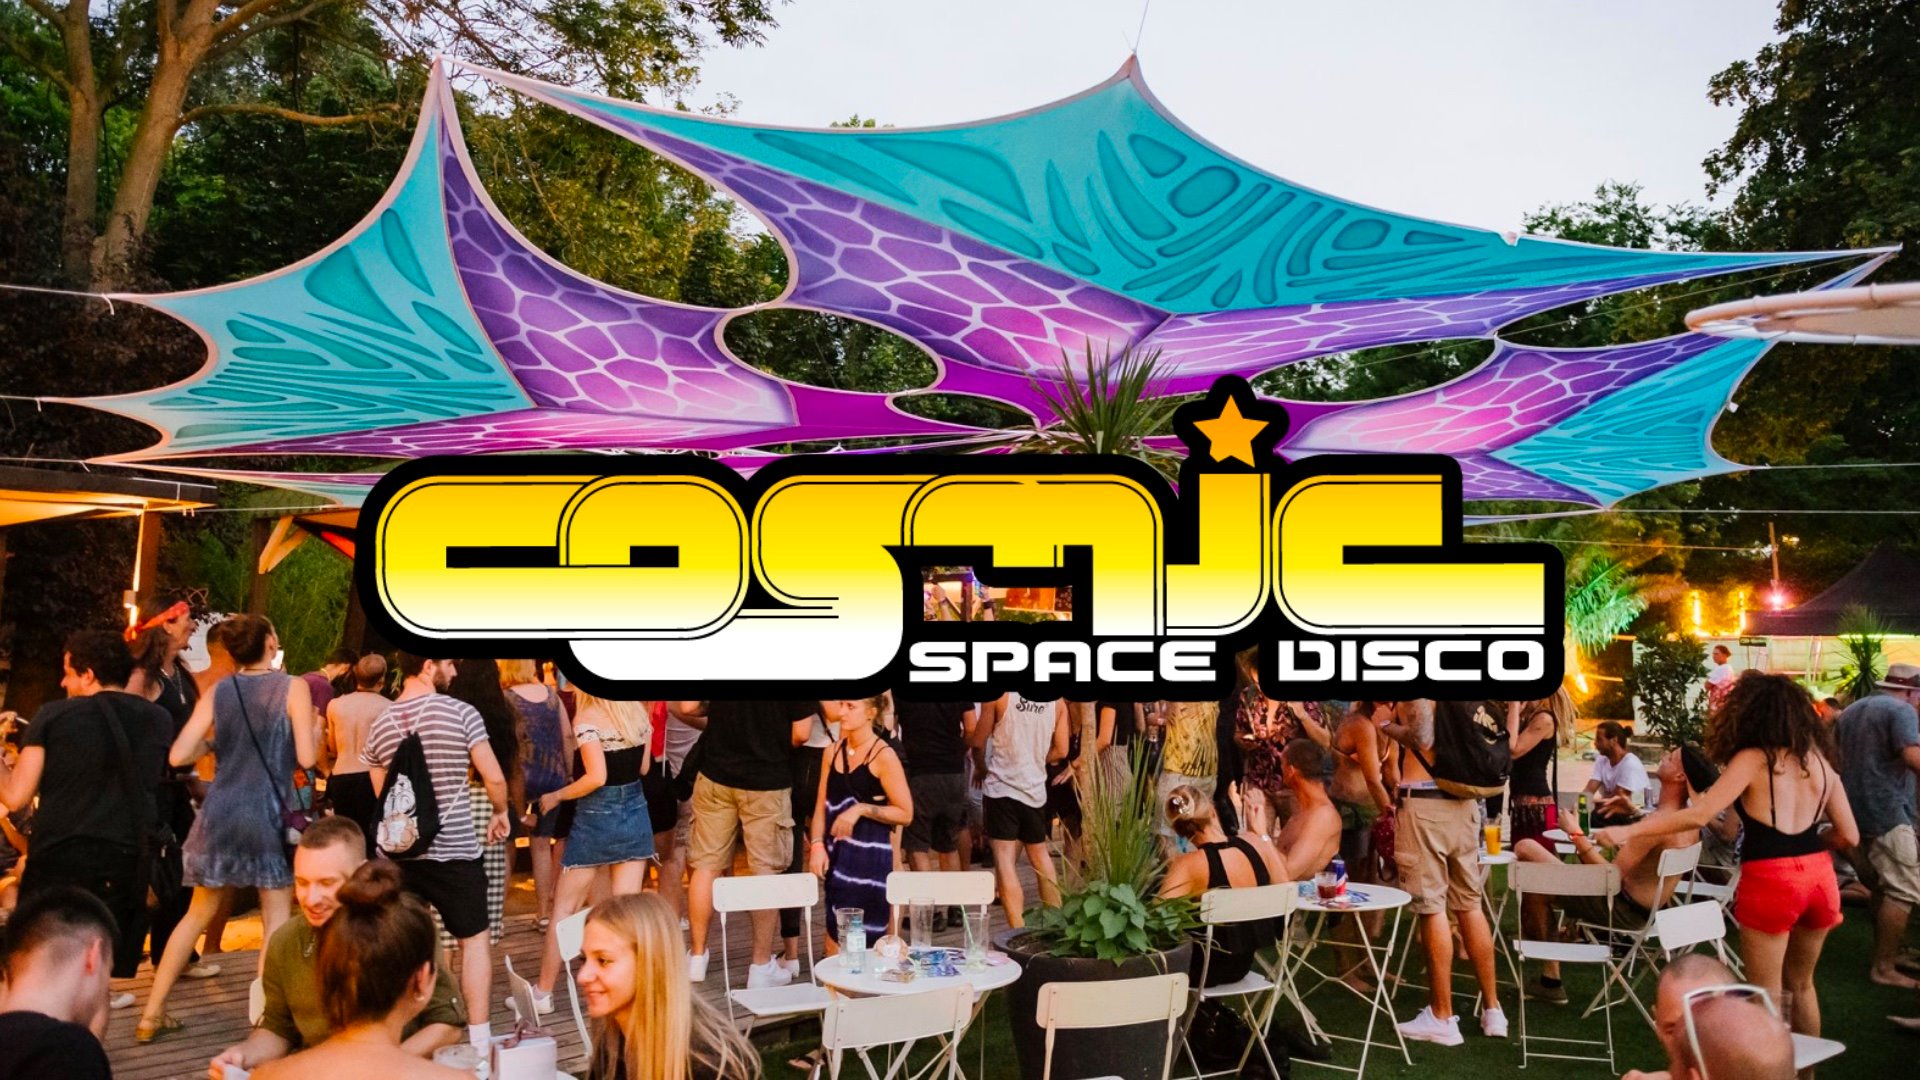 Cosmic Space Disco Pool Party am 13. August 2021 @ Pratersauna.